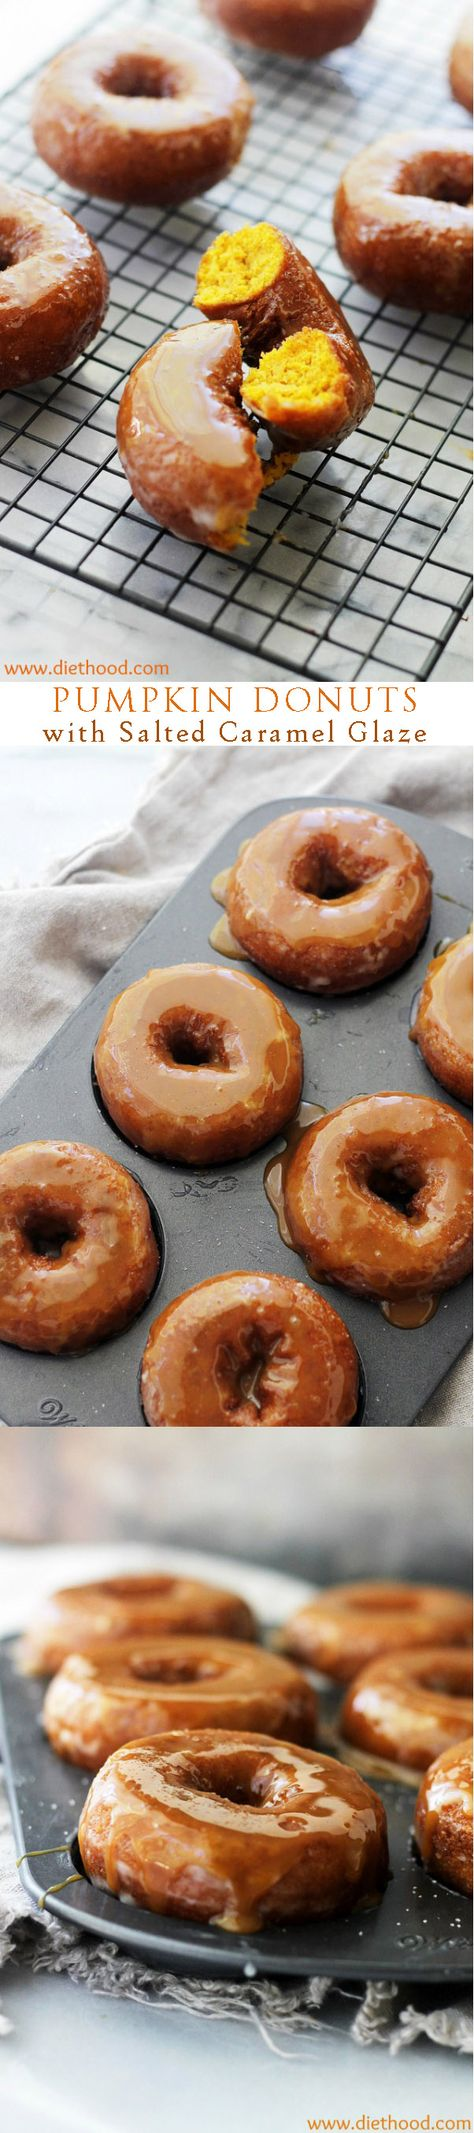 Baked Pumpkin Donuts dipped in a Salted Caramel Glaze